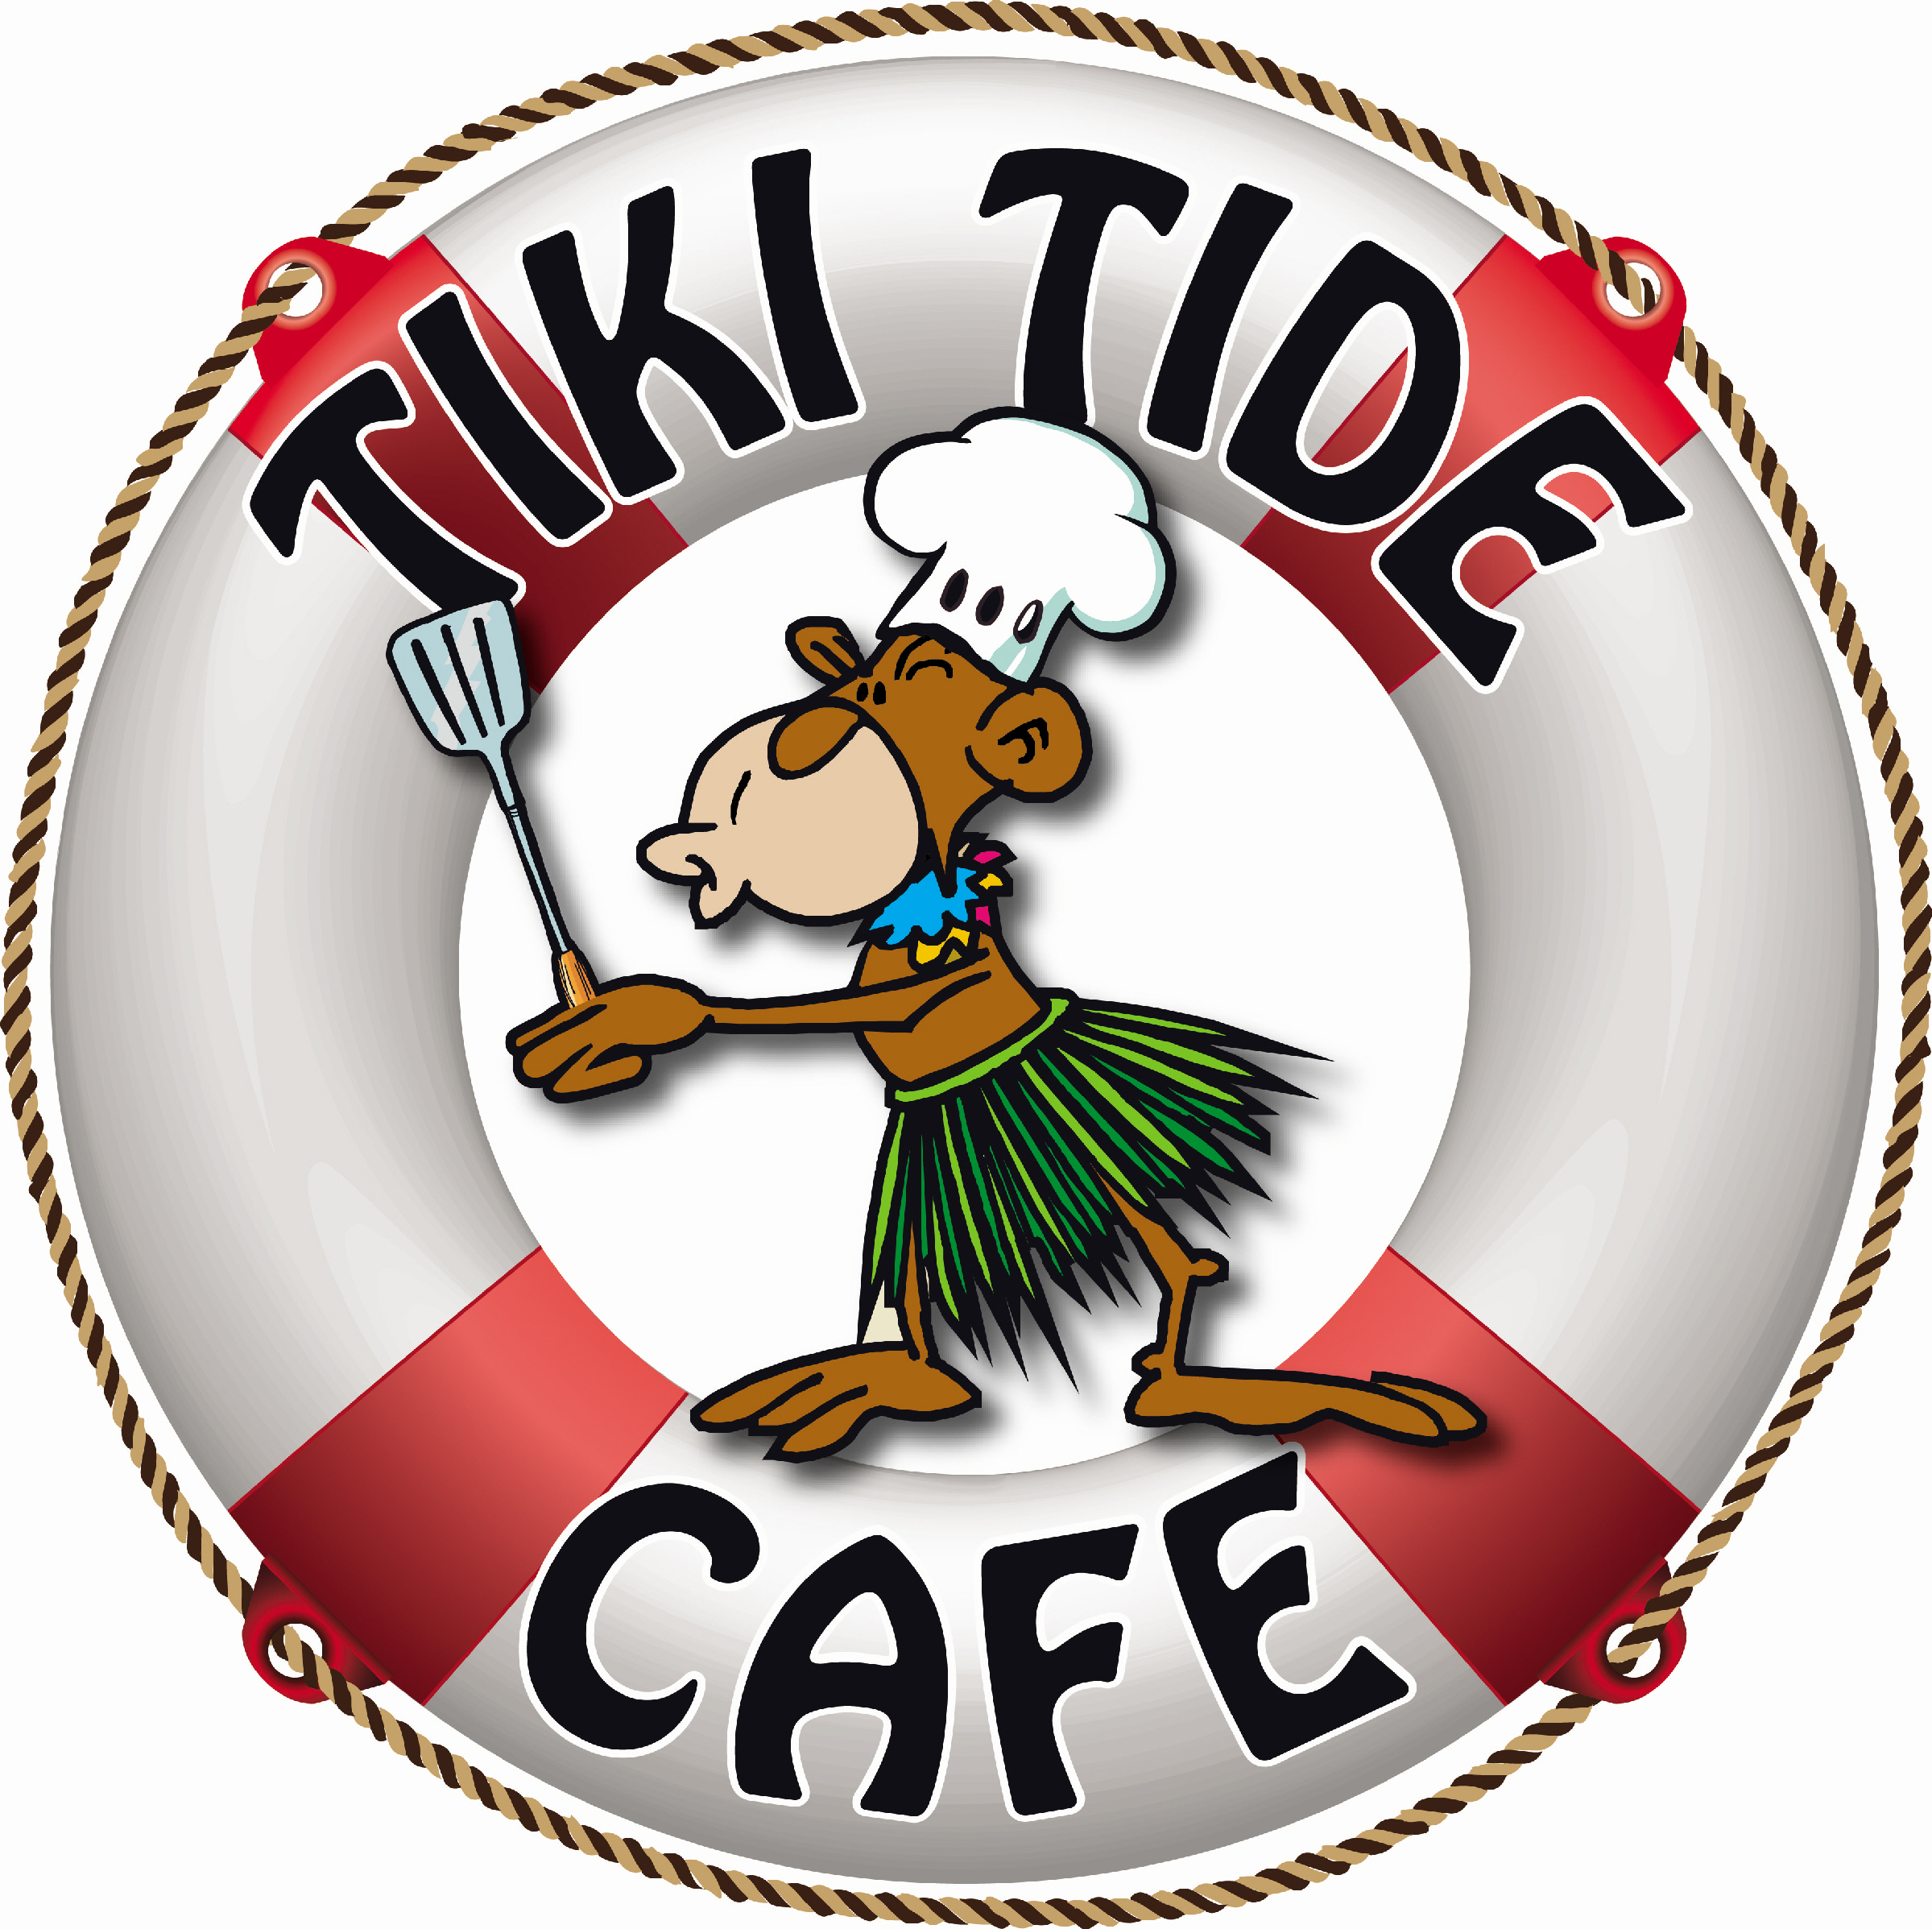 red jacket kahuna tiki tide logo.JPG